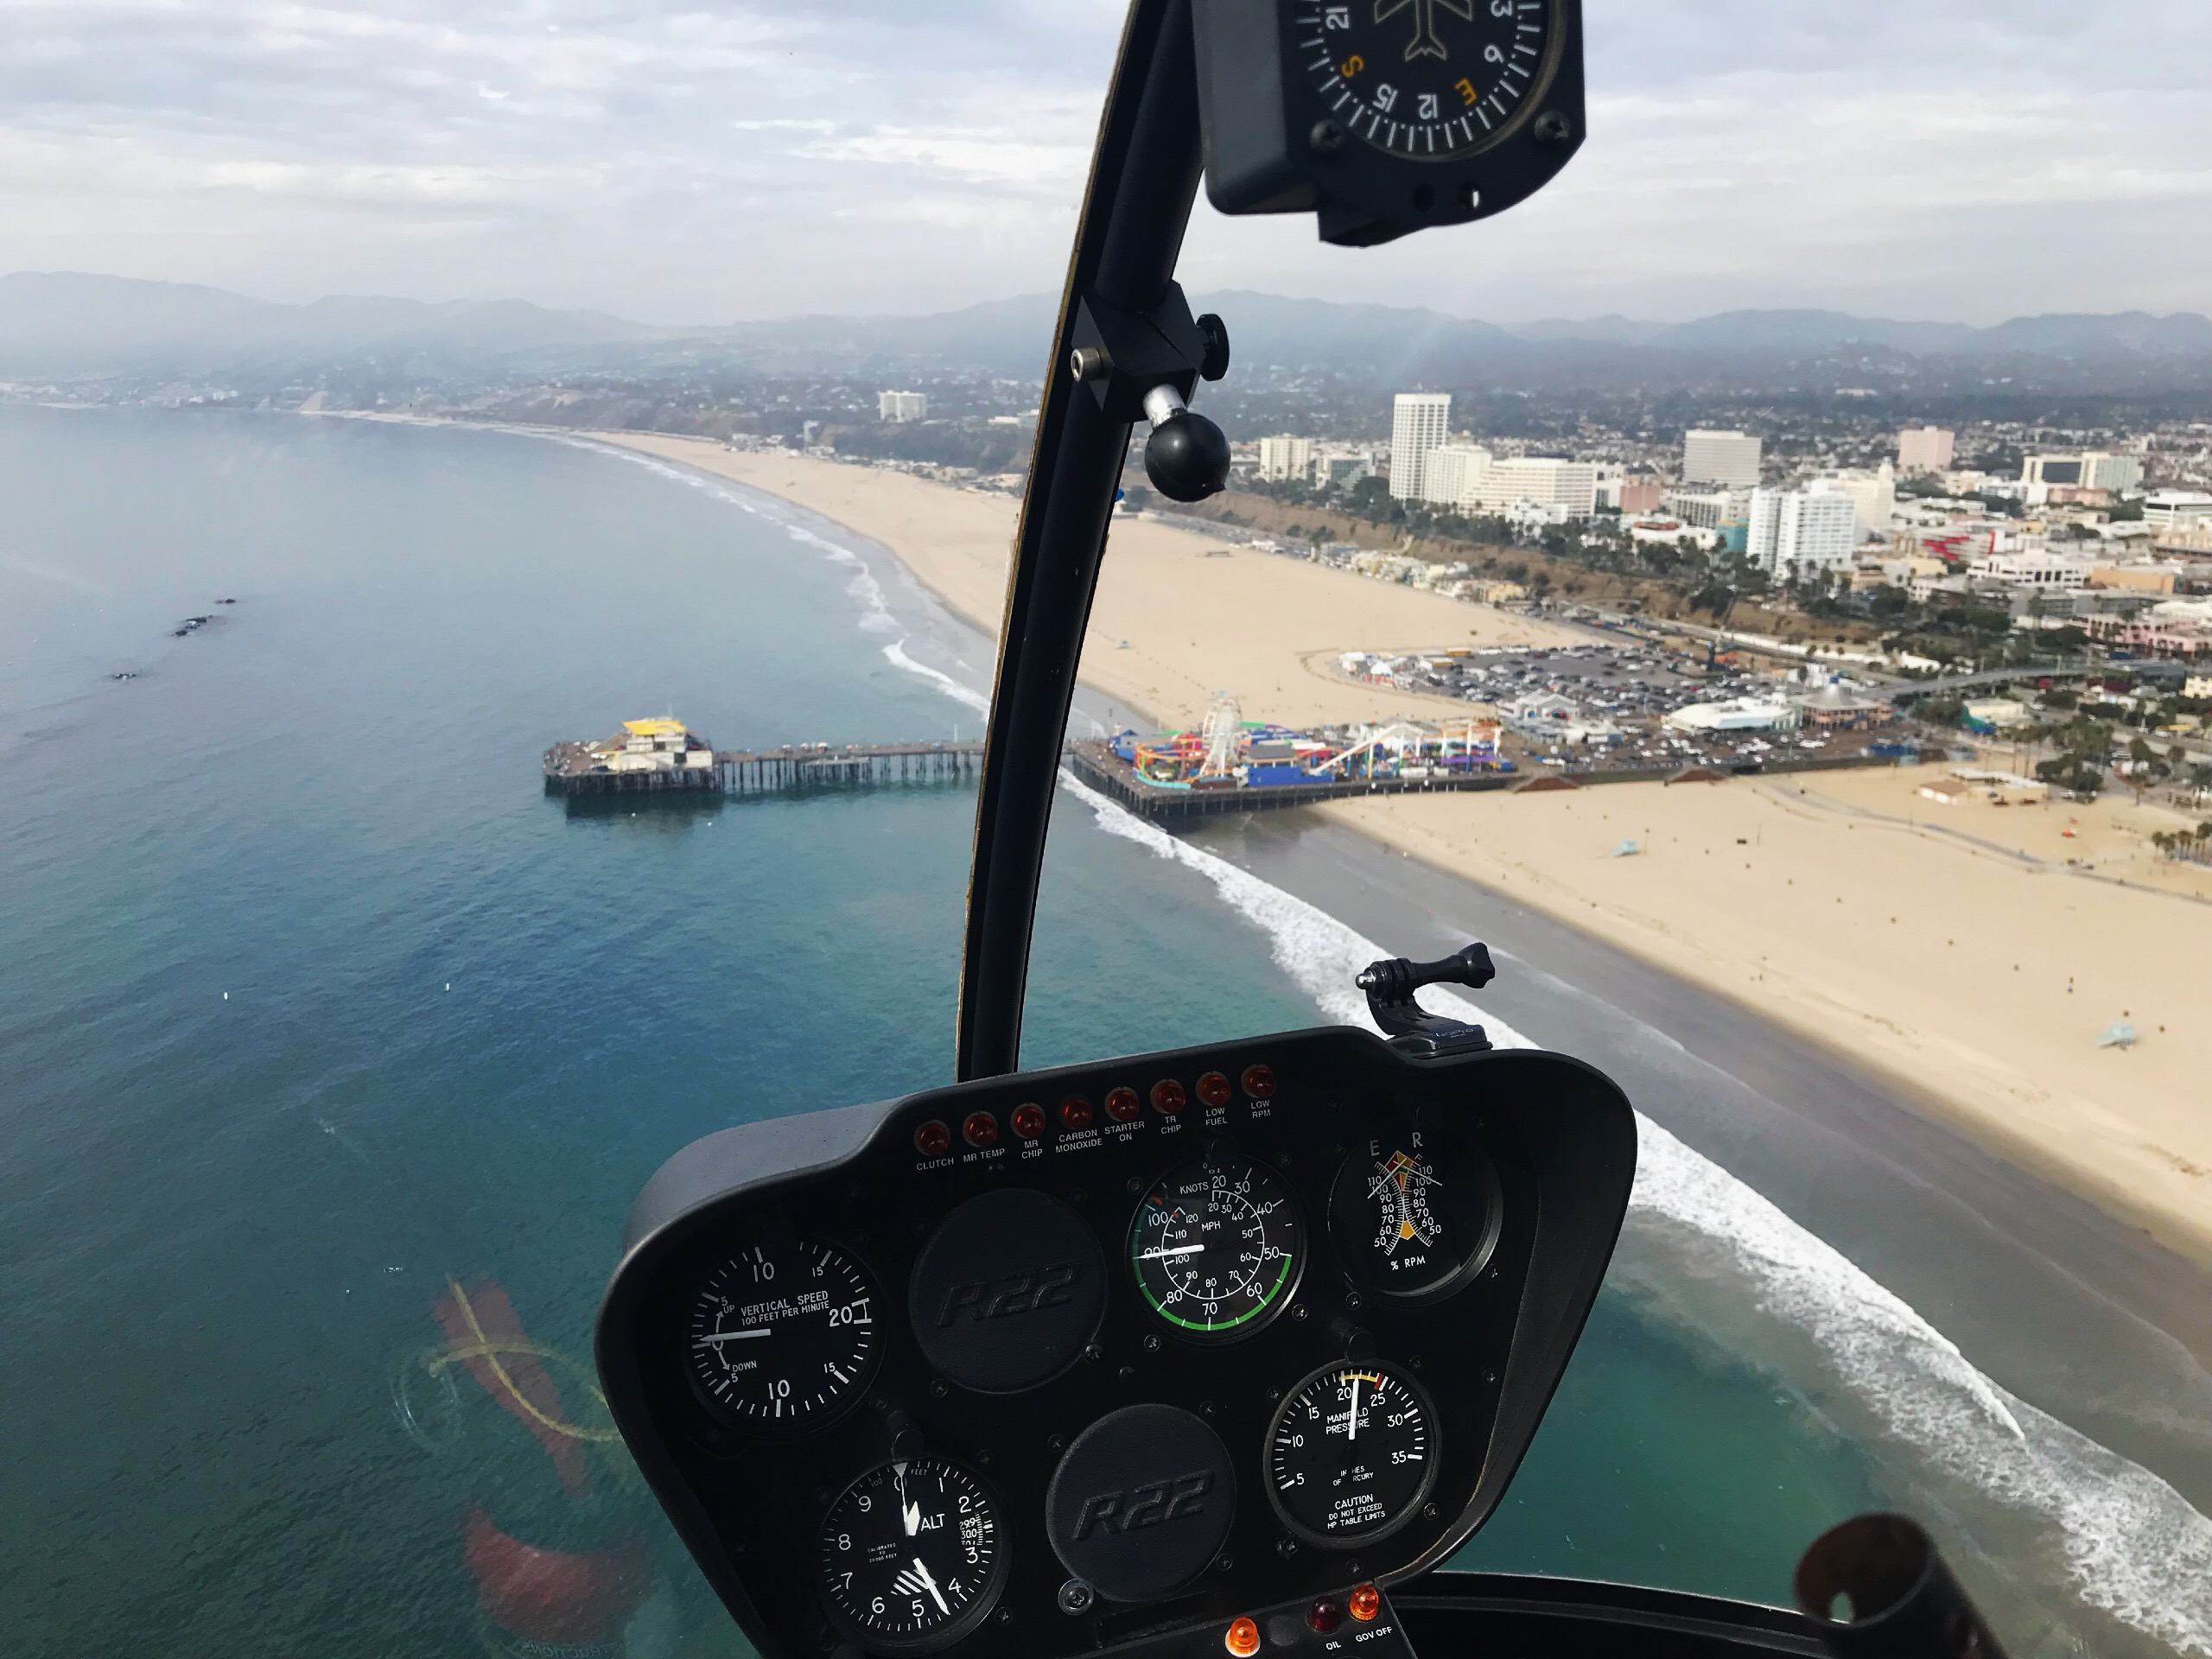 Santa Monica Pier view from helicopter